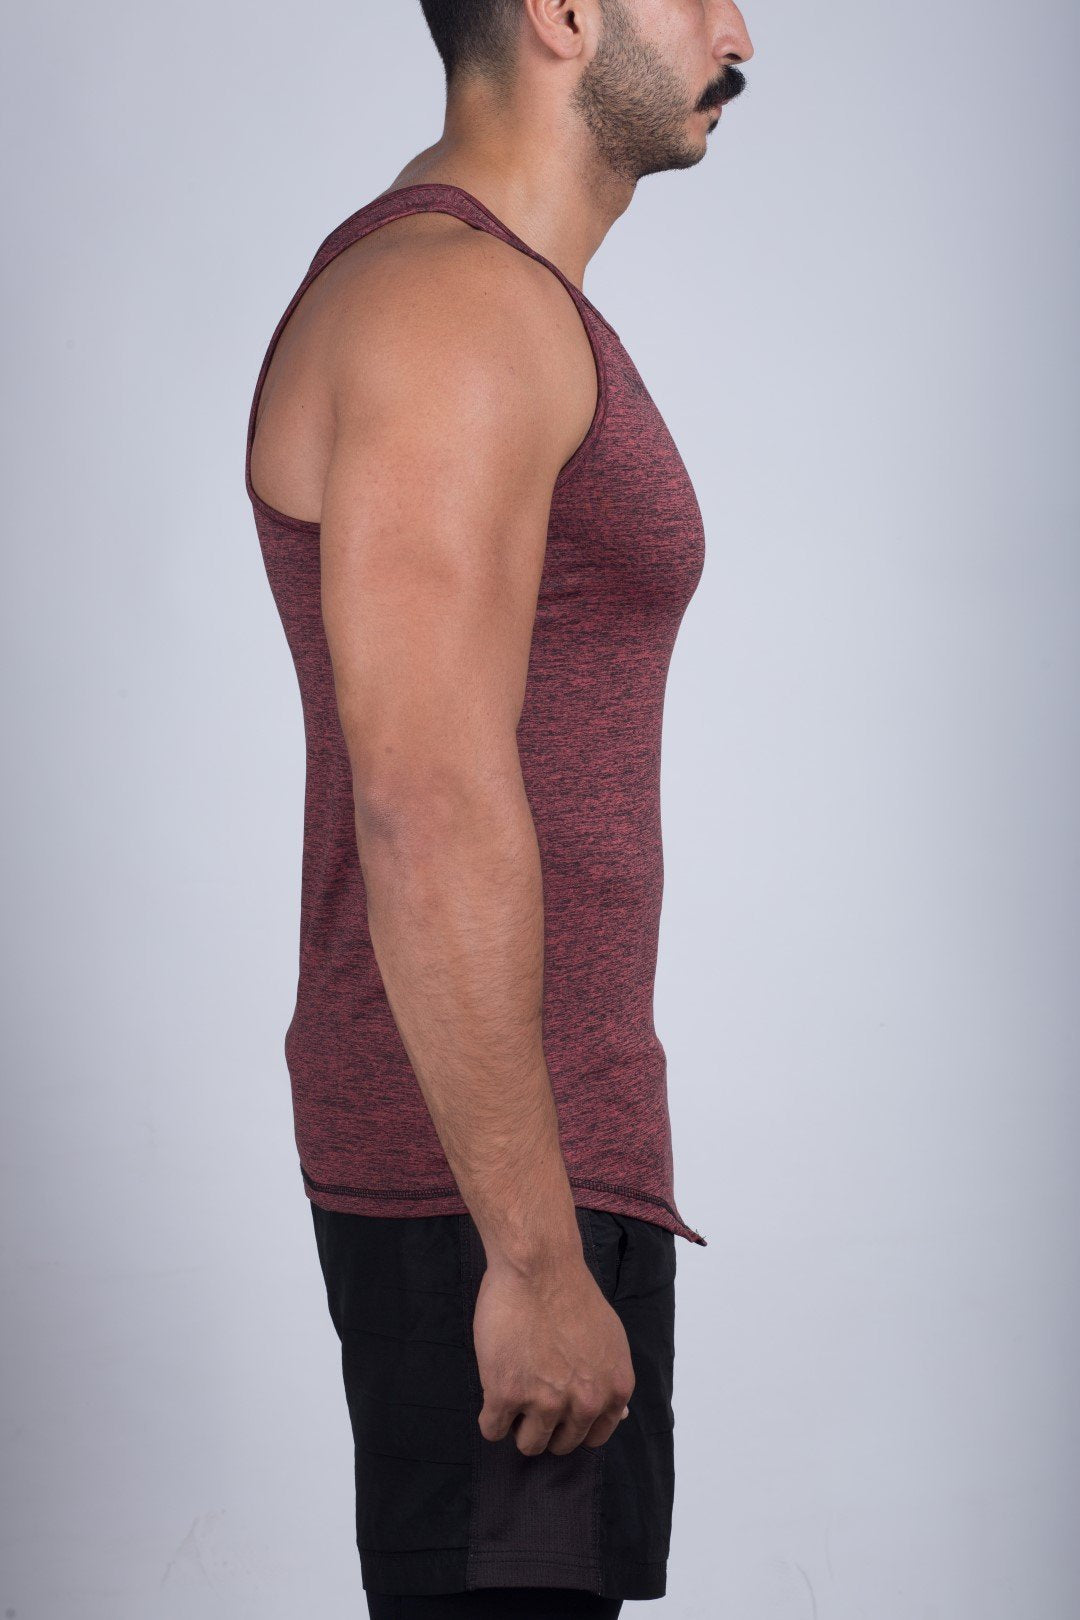 Muscle Shirt (Fire Brick) - Sigma Fit